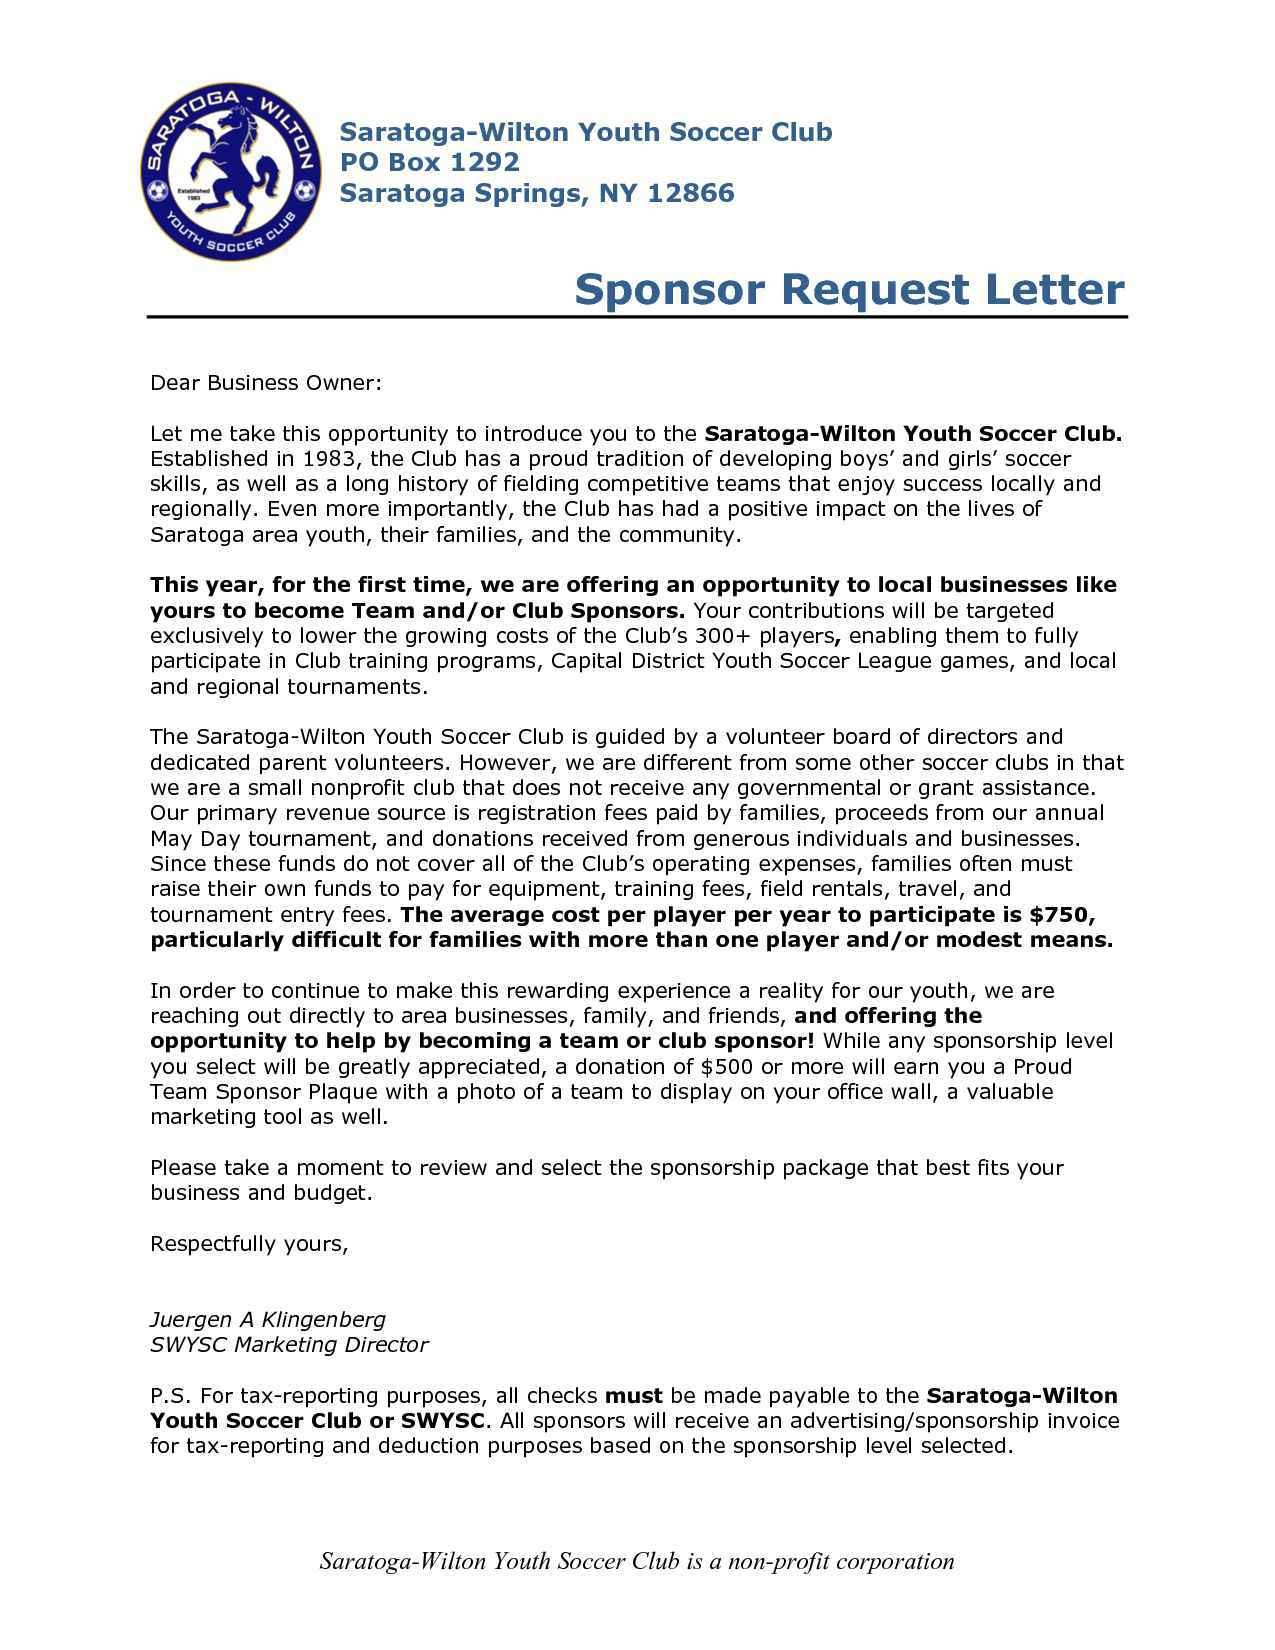 Fundraising Letter Template for Sports Teams - Sponsorship Letter for Sports Inspirationa Sample Letter asking for